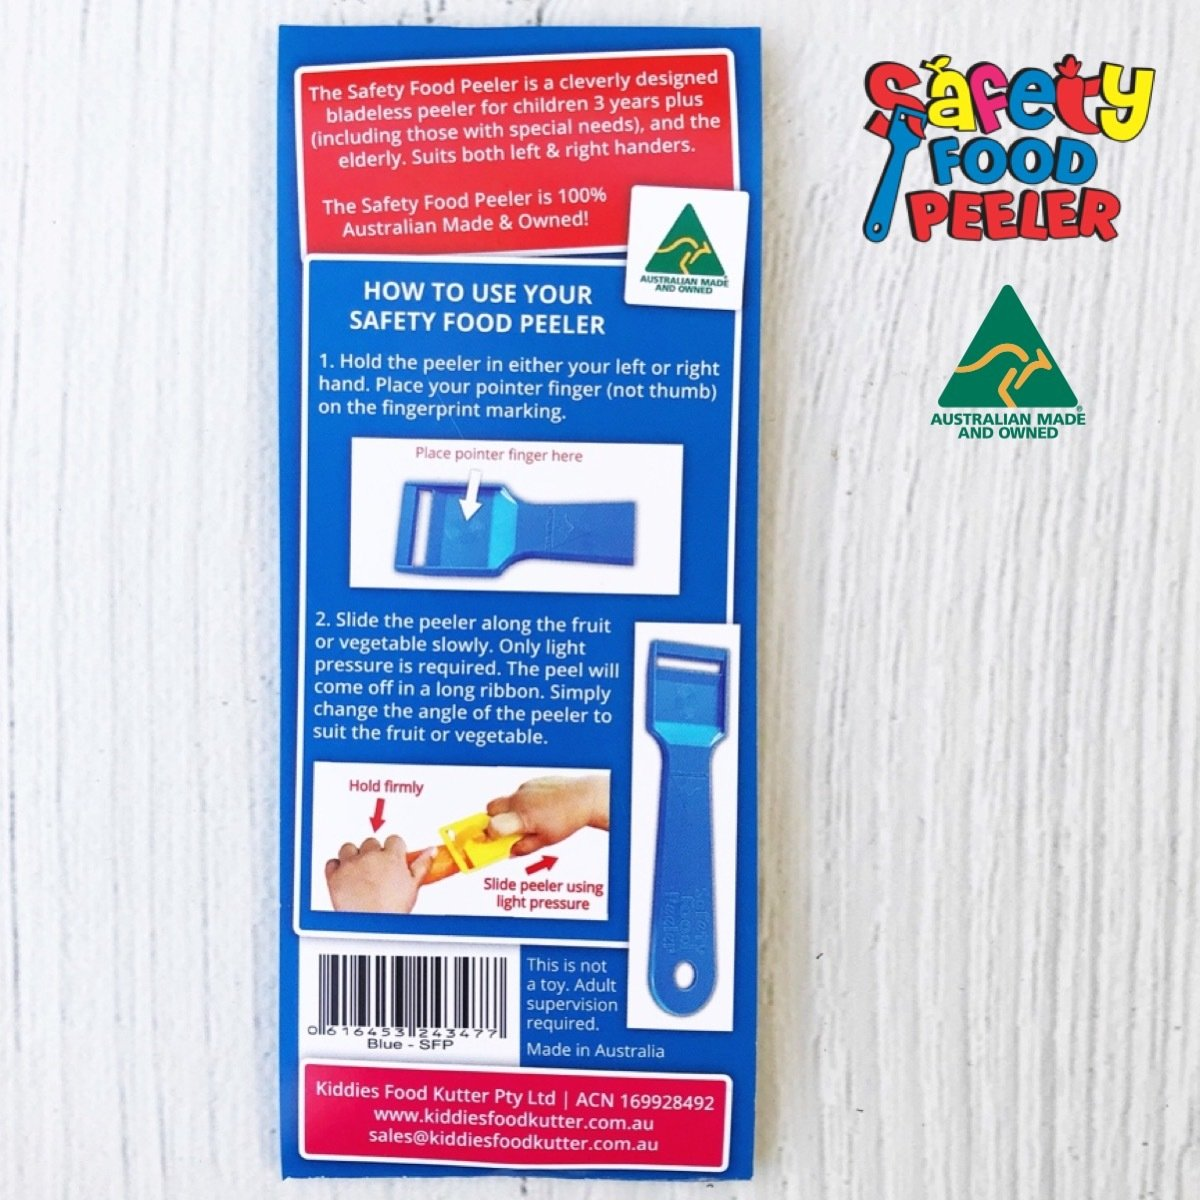 Safety Food Peeler Instructions